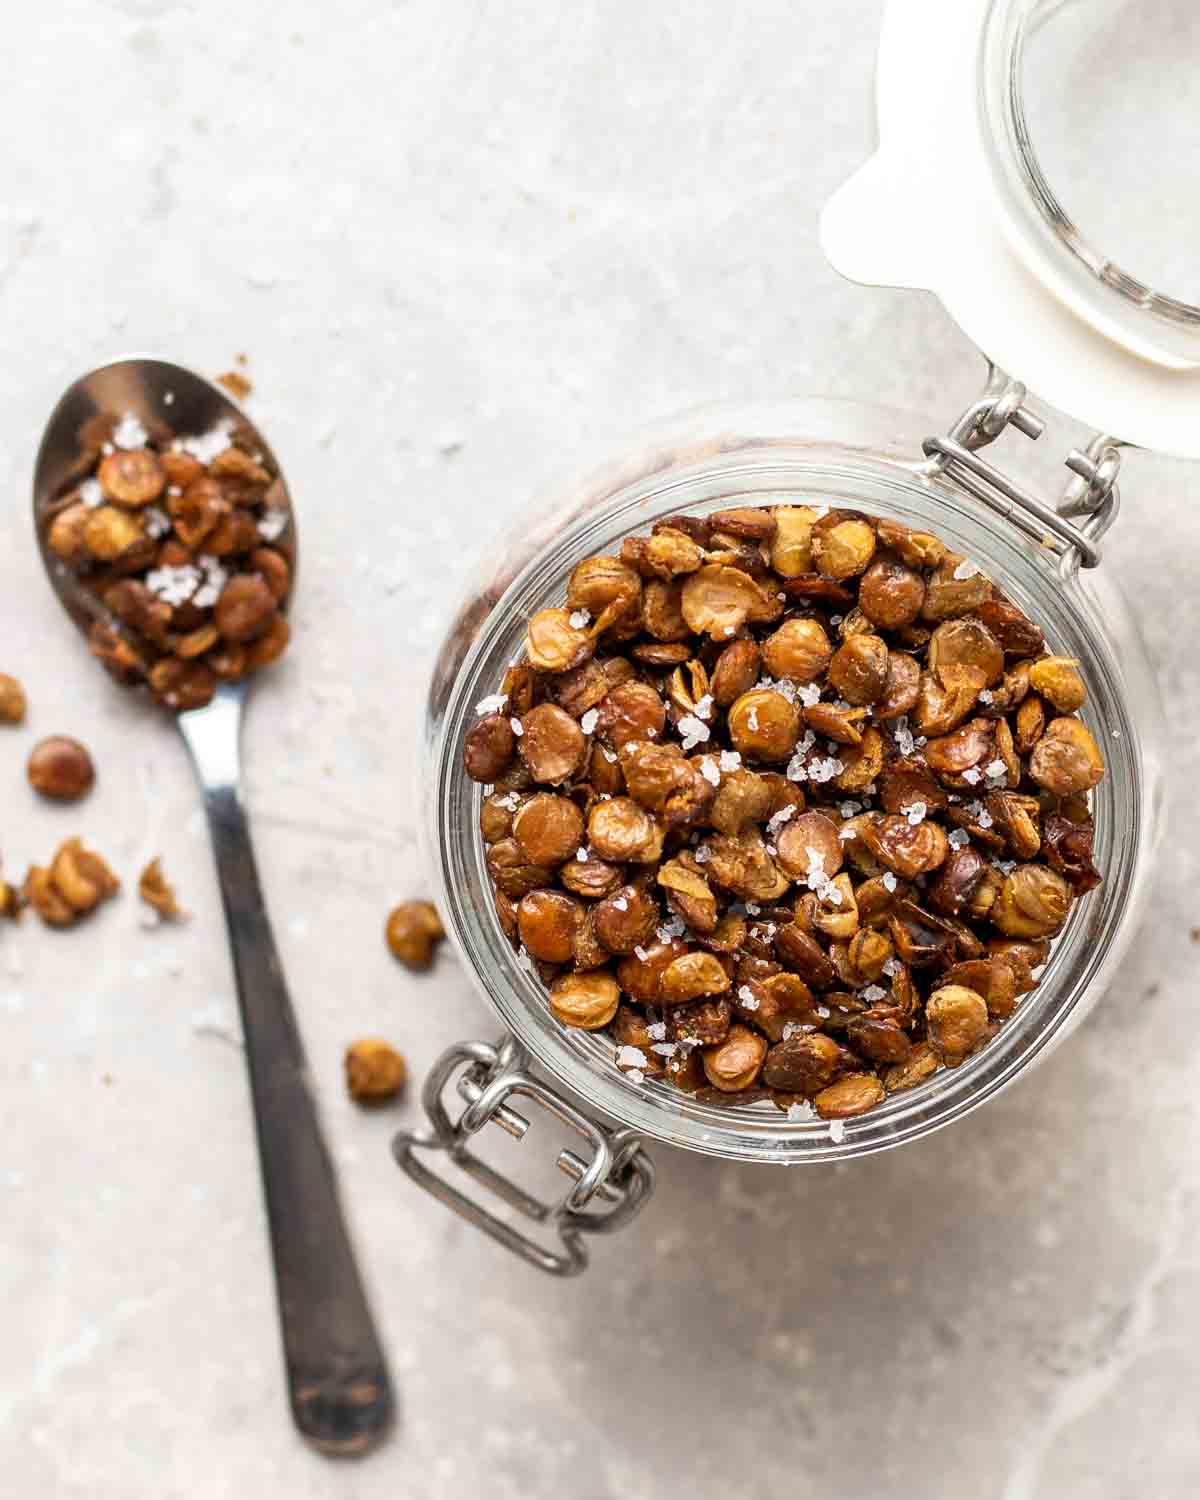 Roasted lentils in a small jar. There is a spoon with lentils in the background.